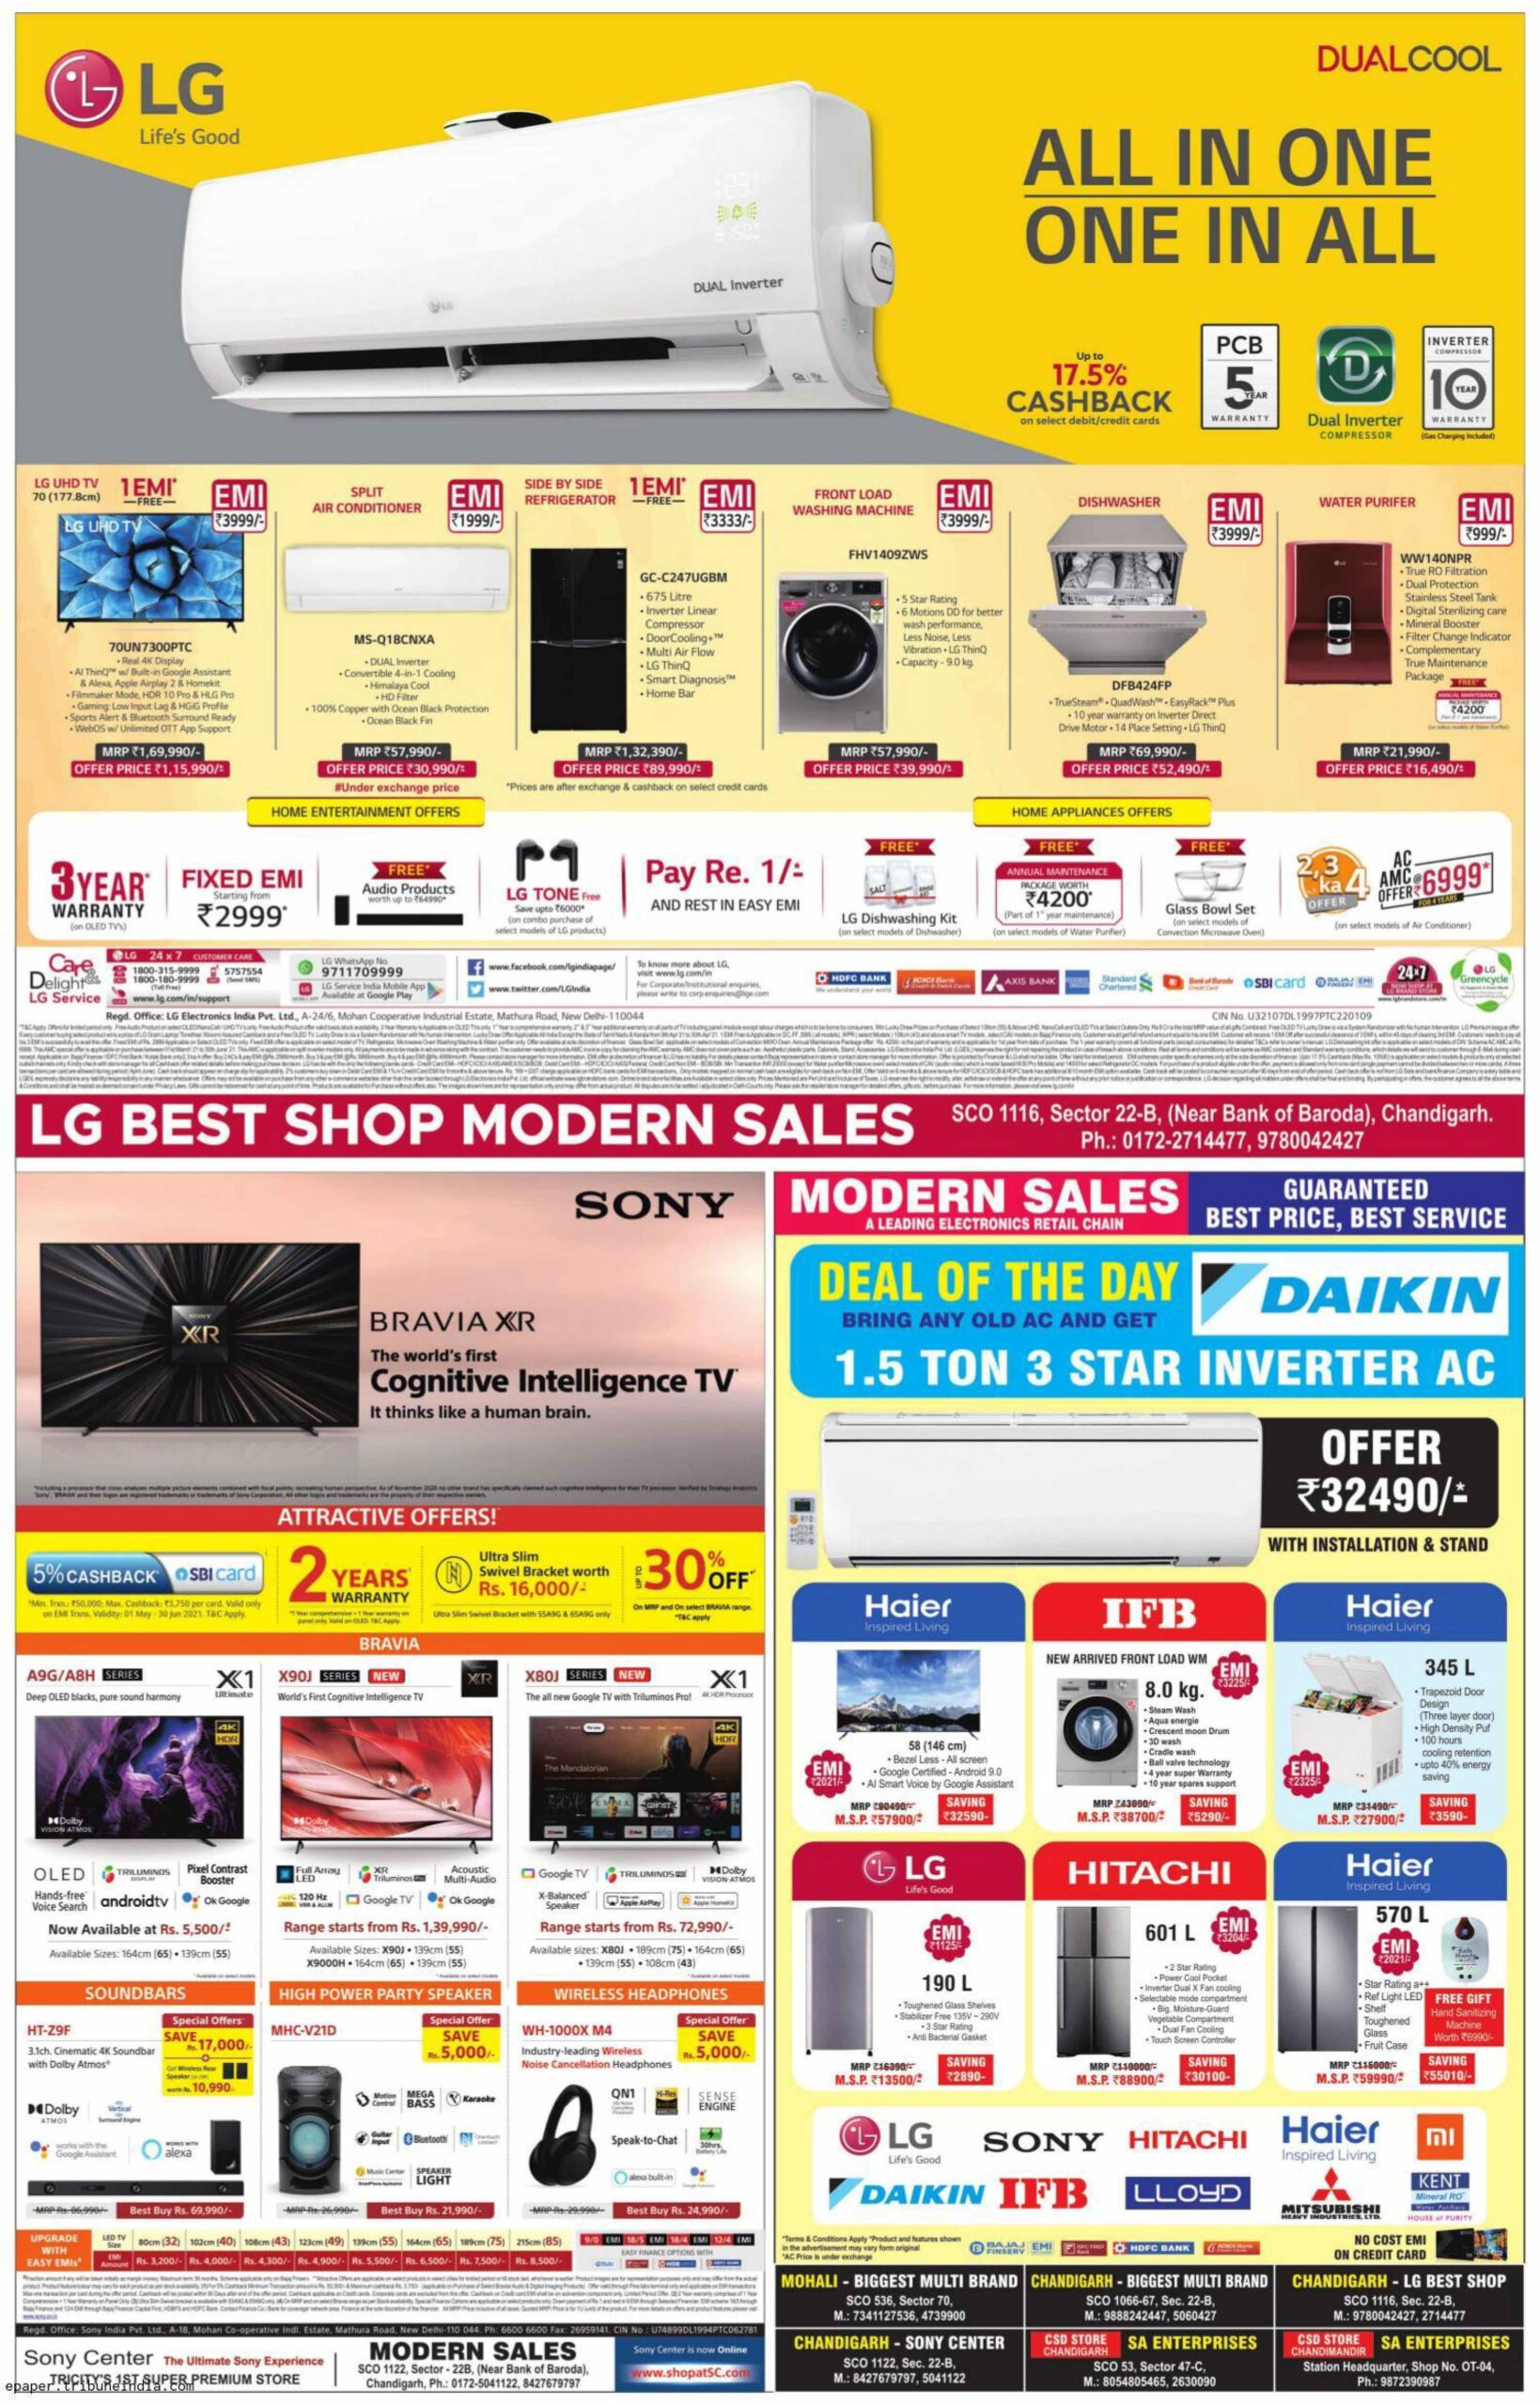 lg-all-in-one-one-in-all-ad-tribune-chandigarh-20-06-2021